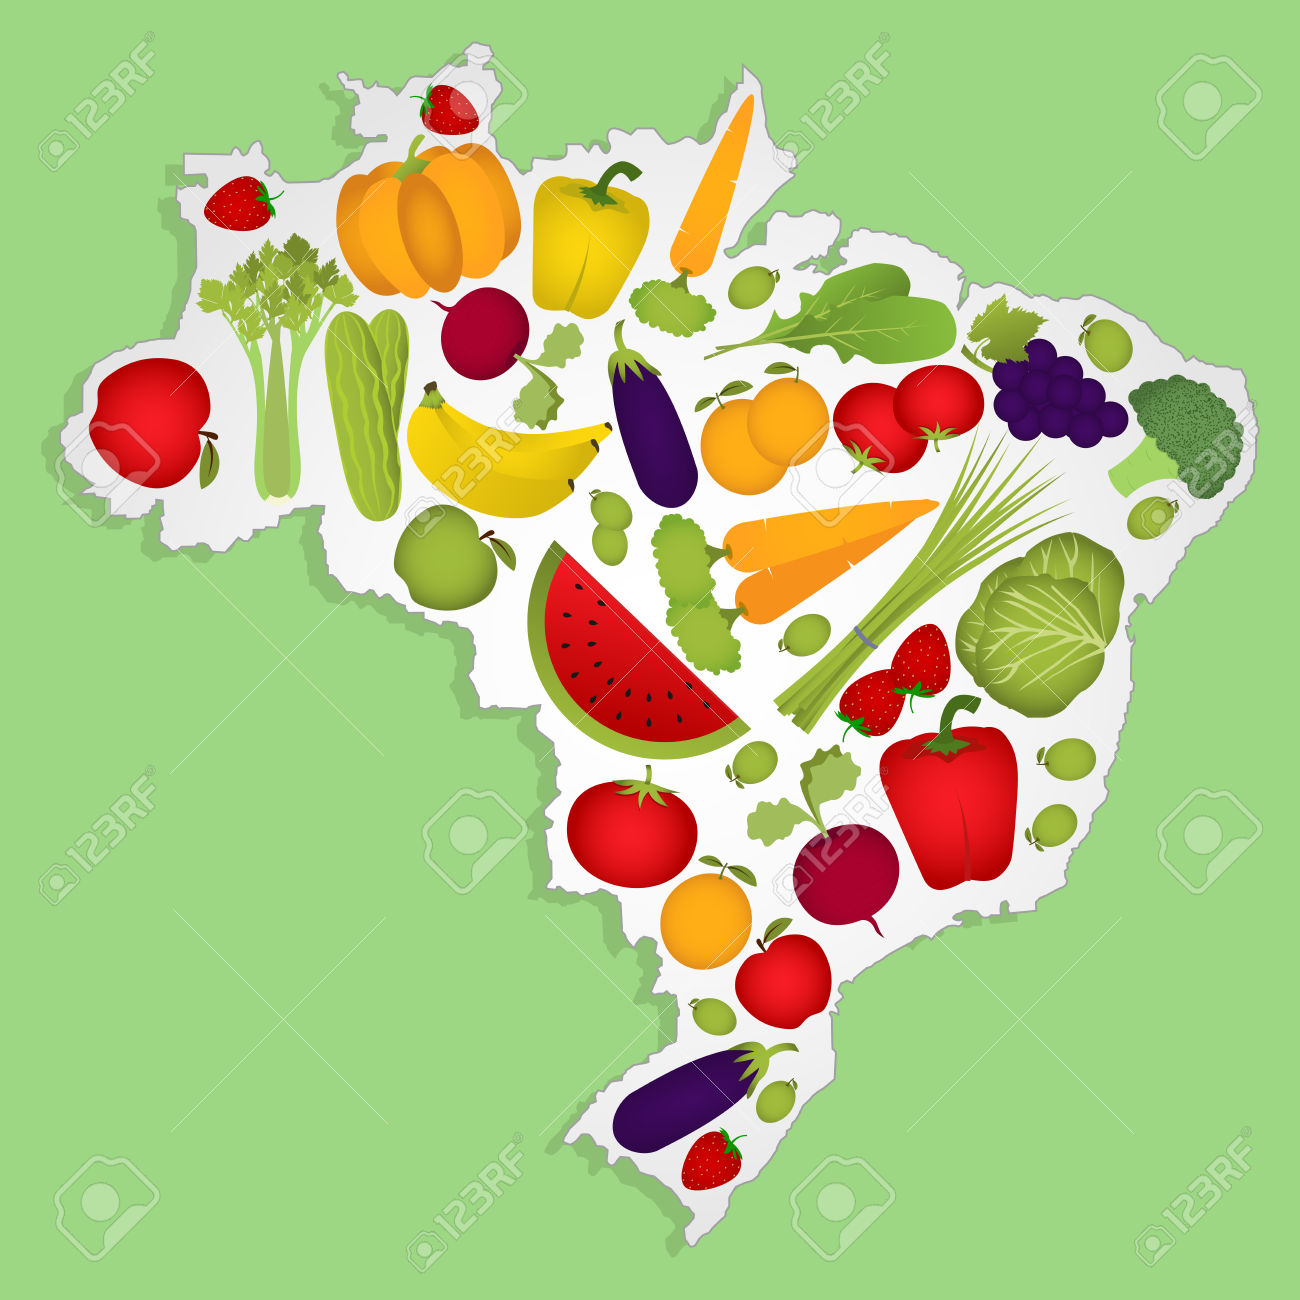 Map Of Brazil Full Of Fruits And Vegetables (tomato , Apple.